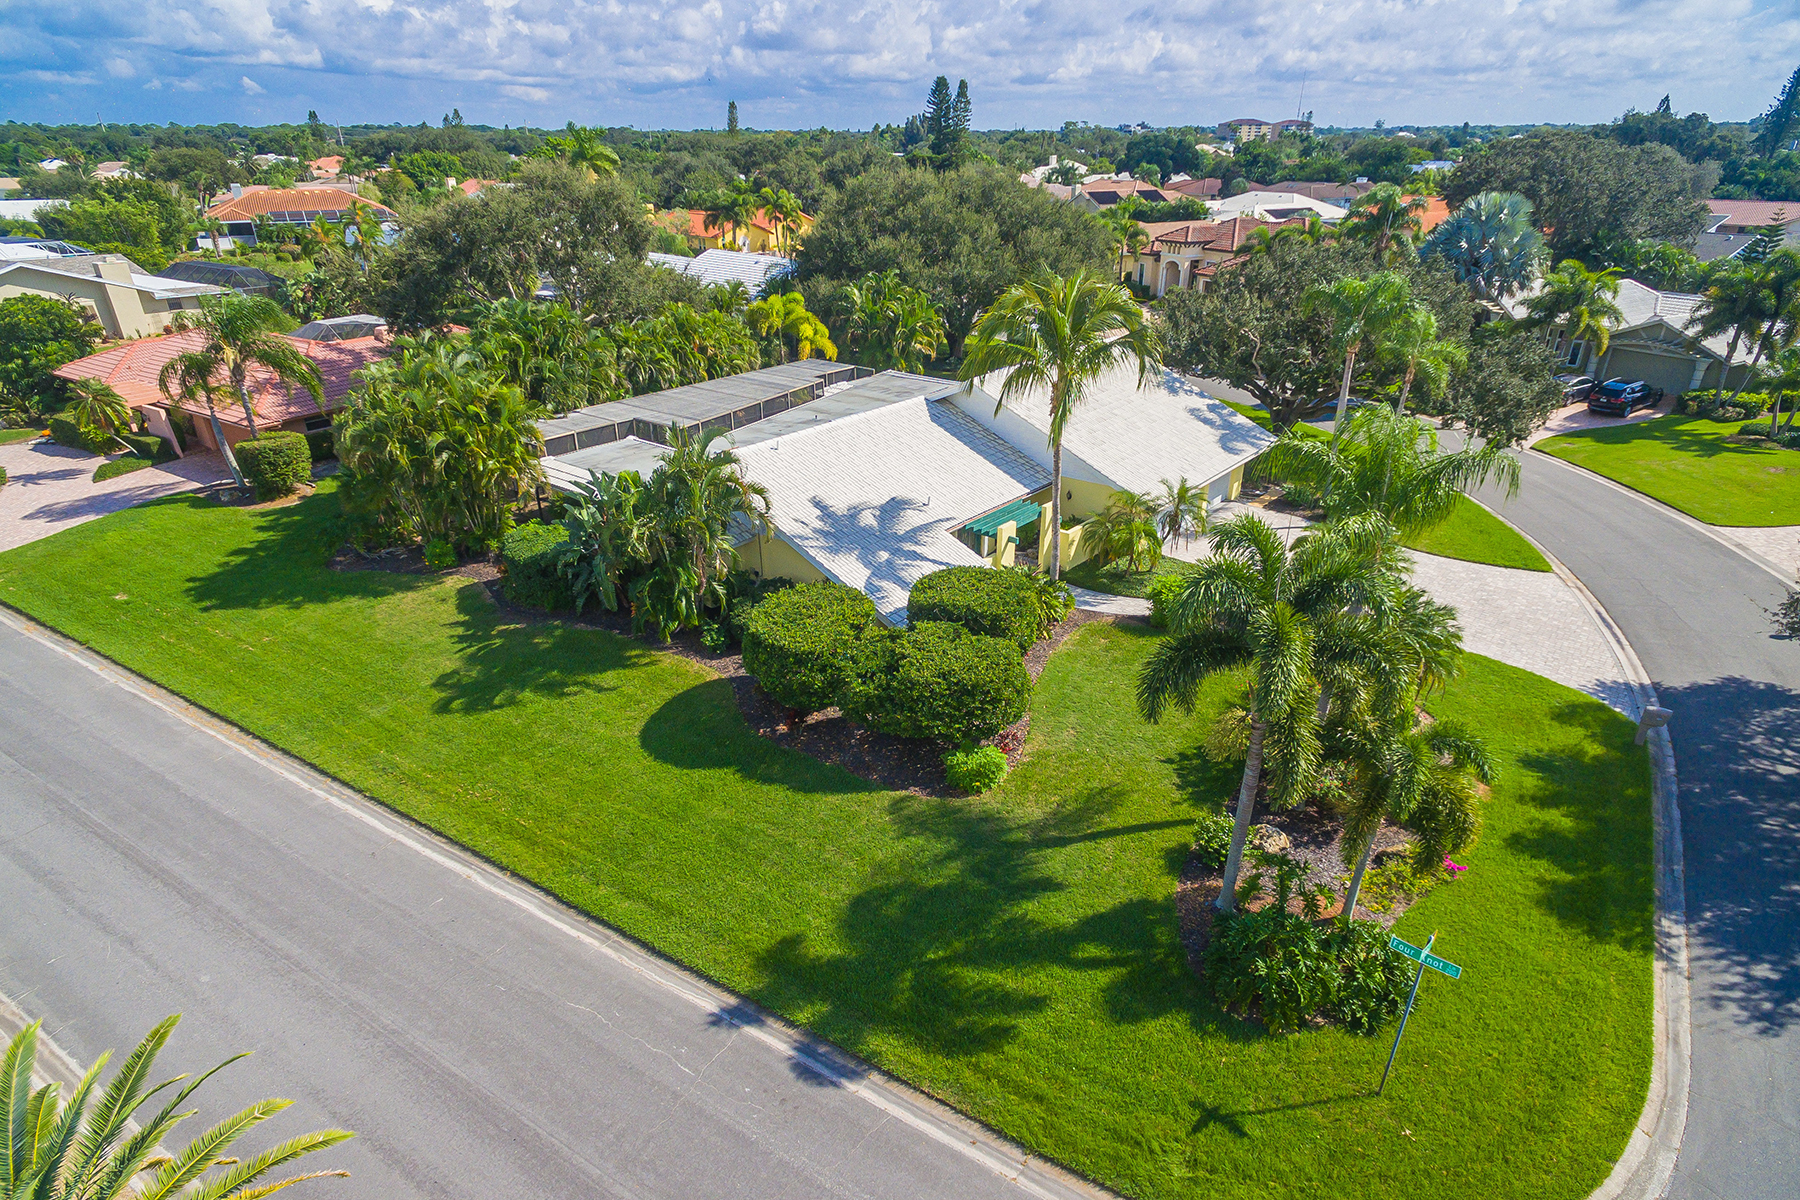 Single Family Homes for Sale at SOUTHBAY YACHT & RACQUET CLUB 250 Keel Way Osprey, Florida 34229 United States